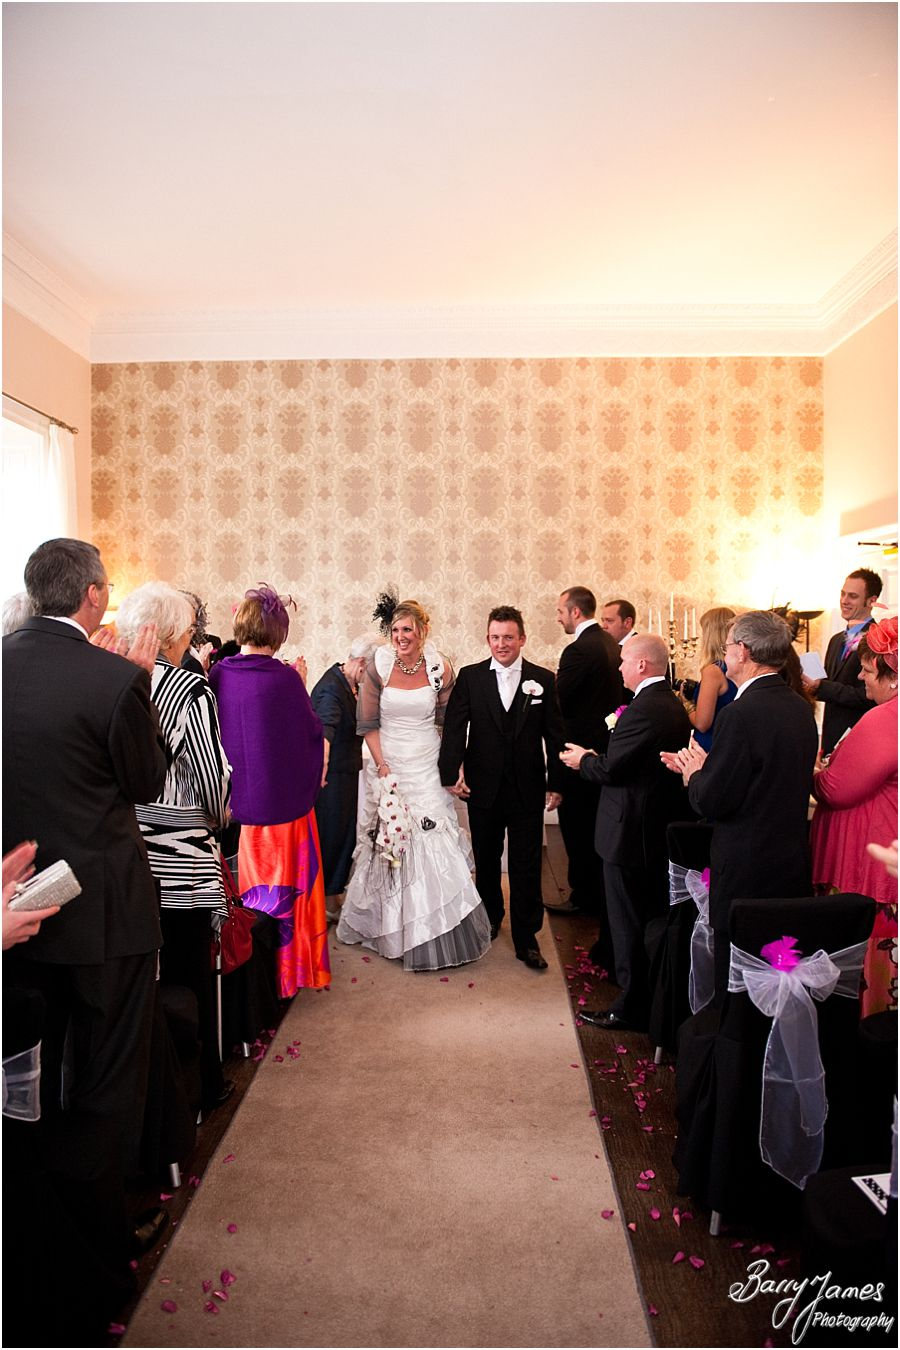 Stunning setting for wedding ceremony at Somerford Hall in Brewood by Professional Wedding Photographer Barry James